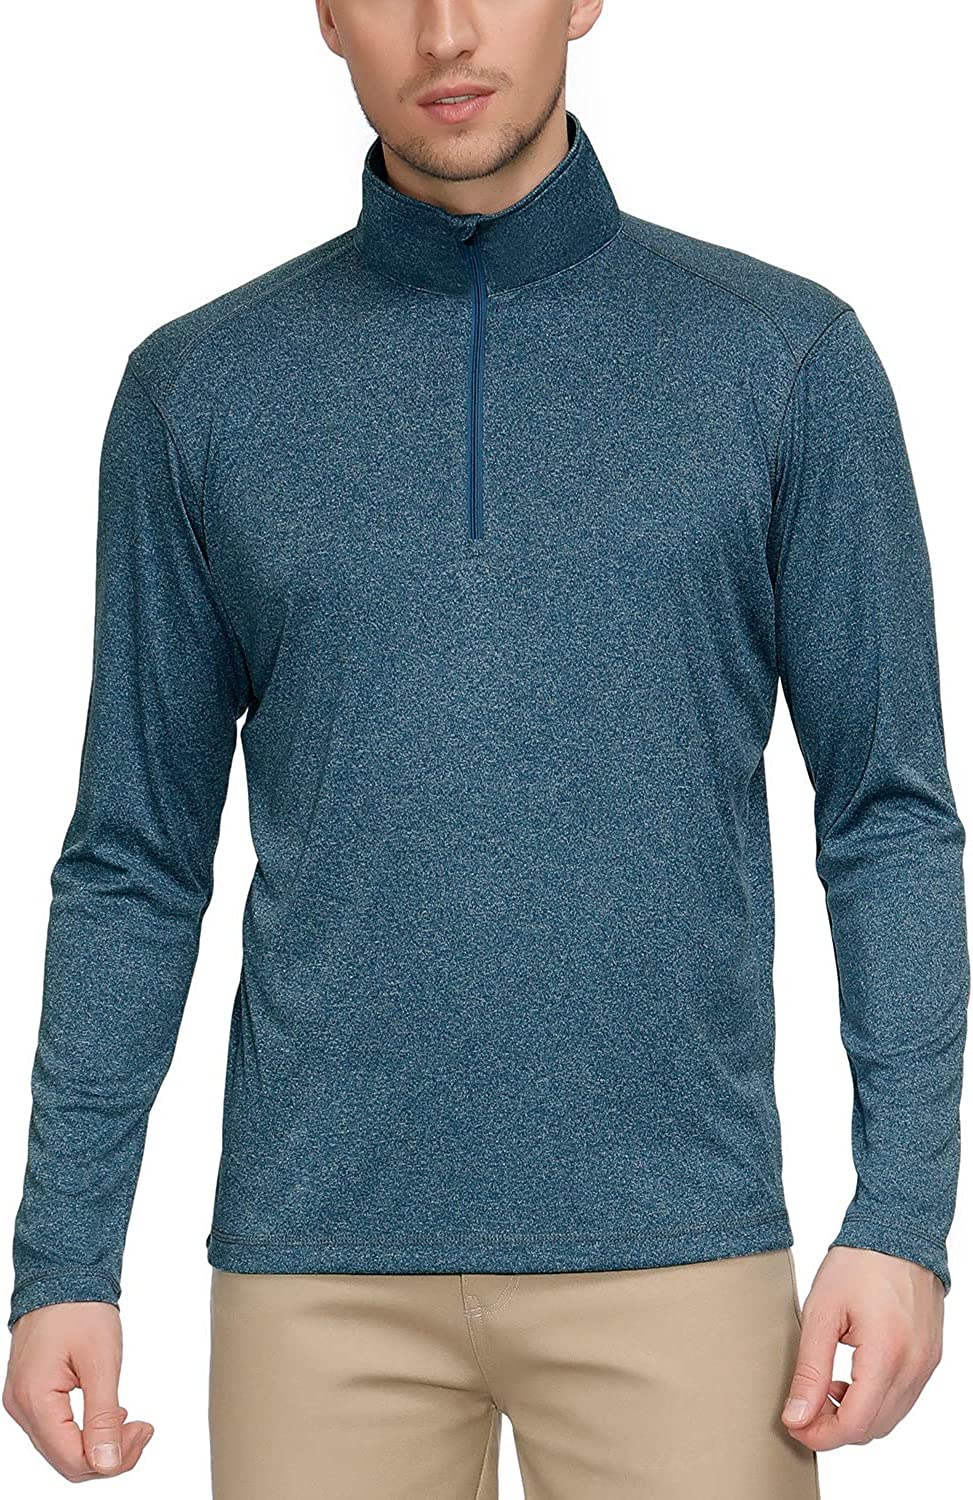 Men's UPF 50+ Sun Protection Long Sleeve Shirts, Quick Dry Performance Zipper T-Shirt Active Top Athletic Running Cycling Gym